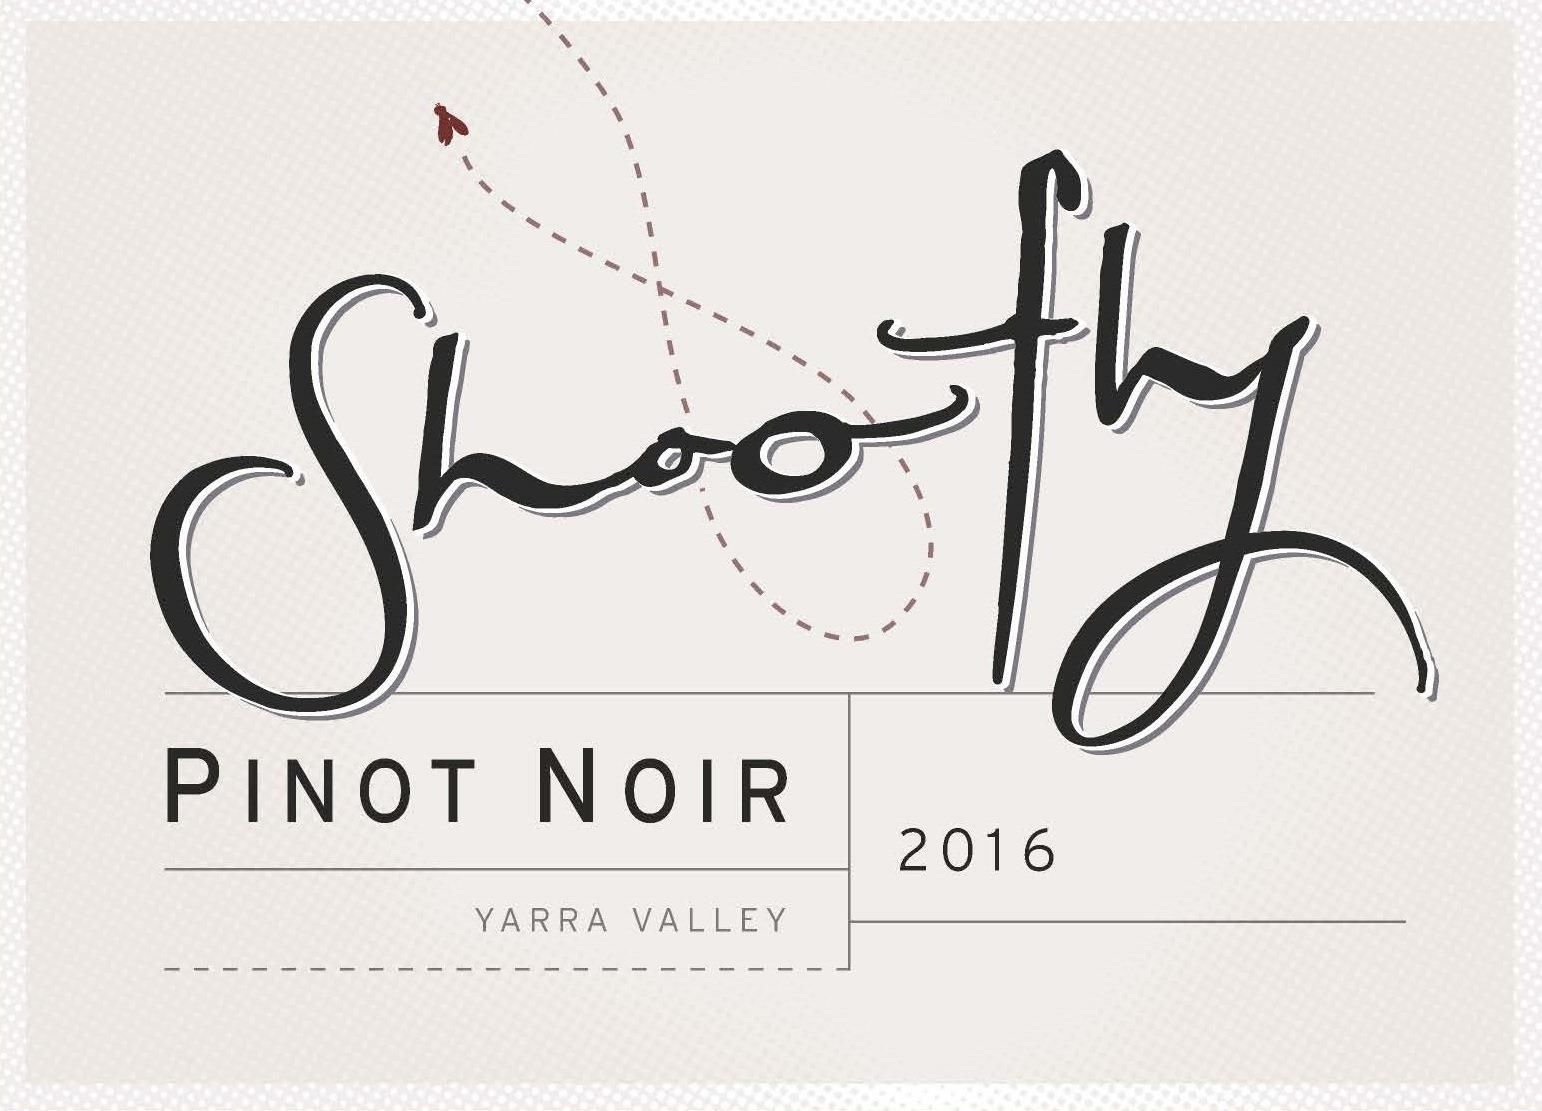 Shoofly Pinot Noir 2016 Front Label